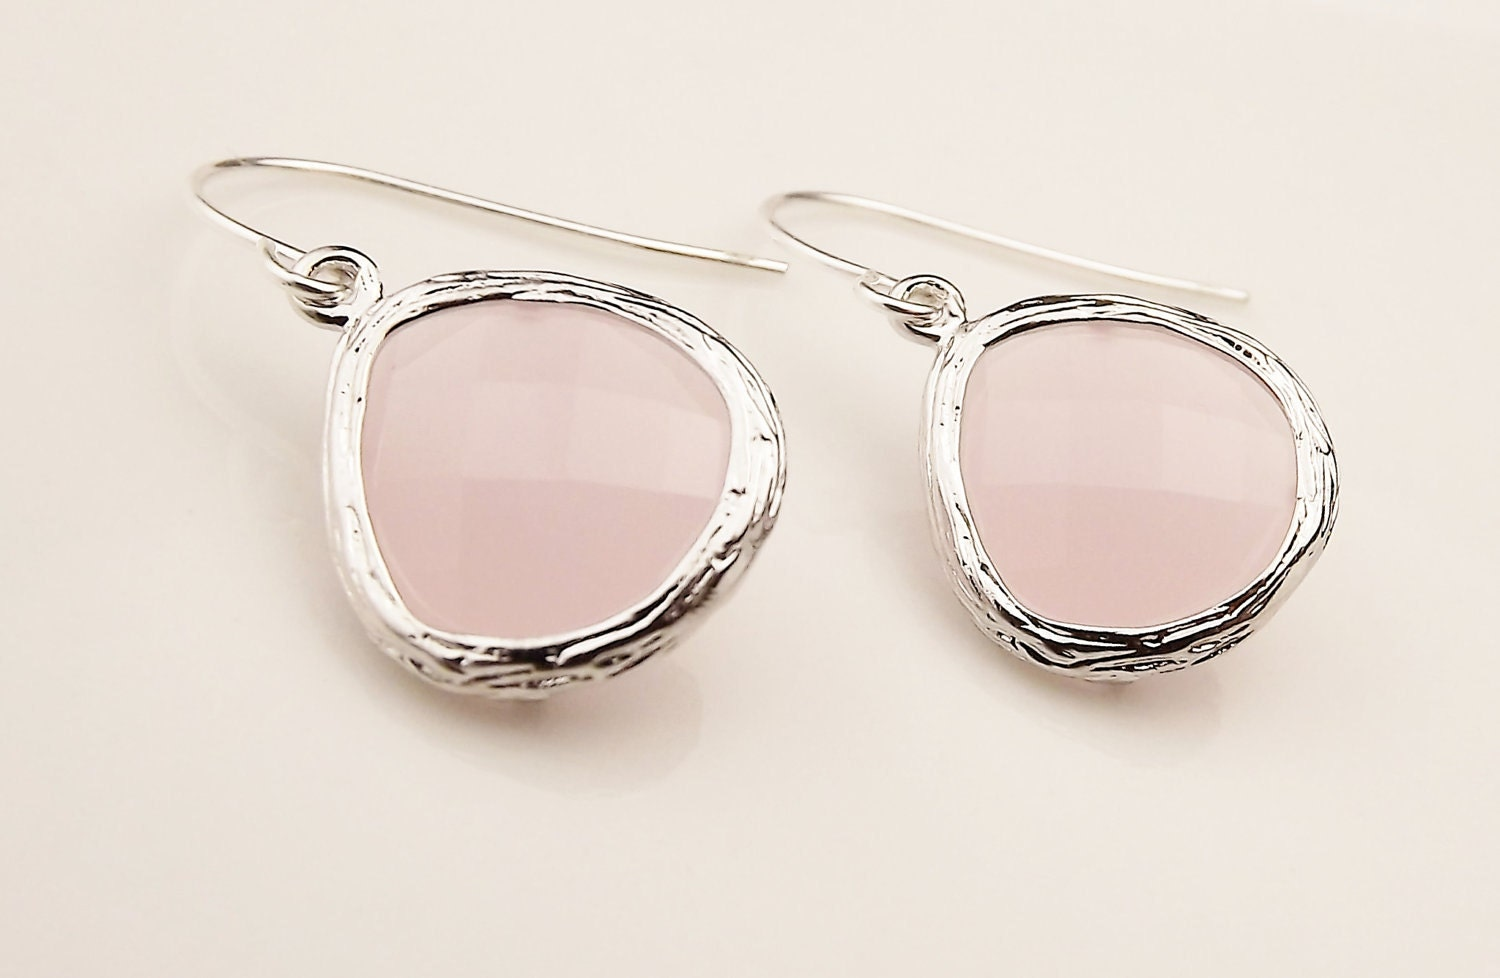 Soft Pink Faceted Teardrop Earrings - StephieMc